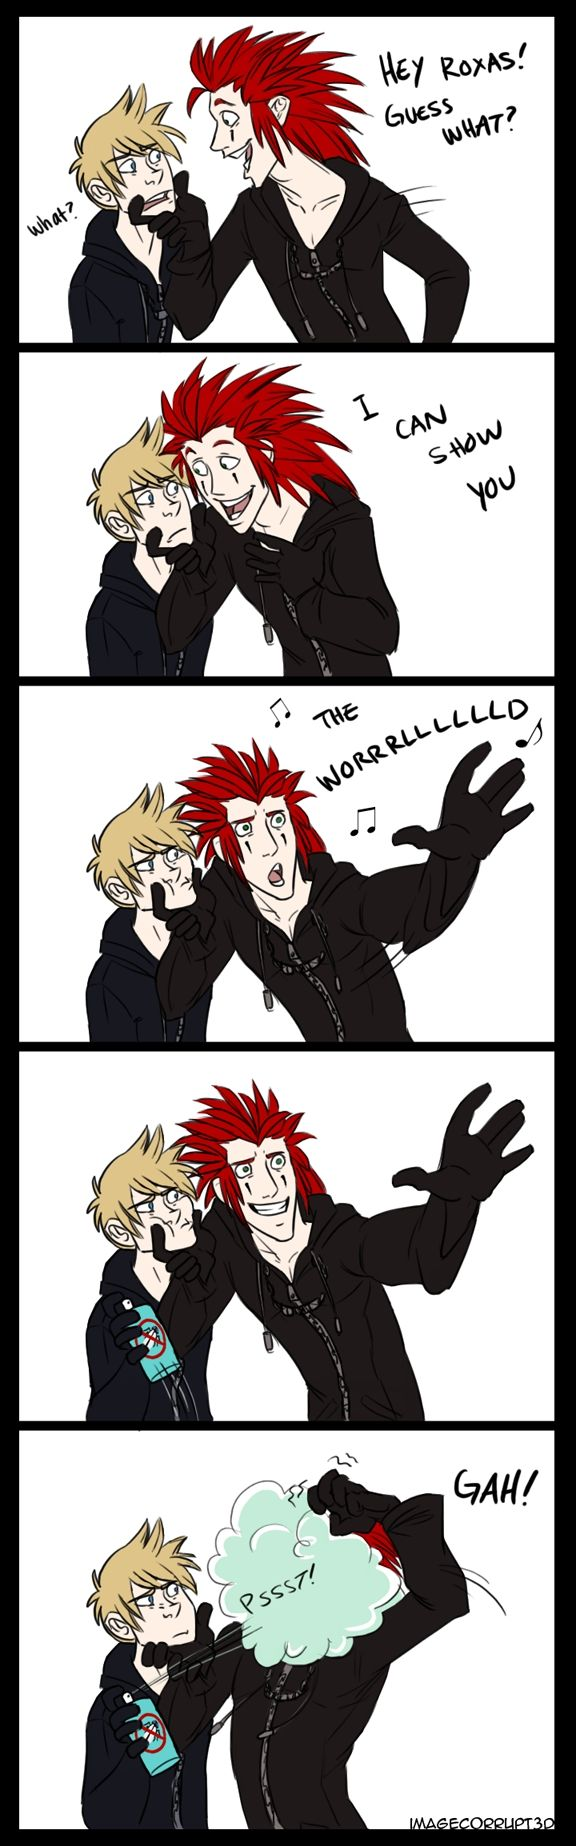 Oh Axel......       Roxas is so funny here! XD